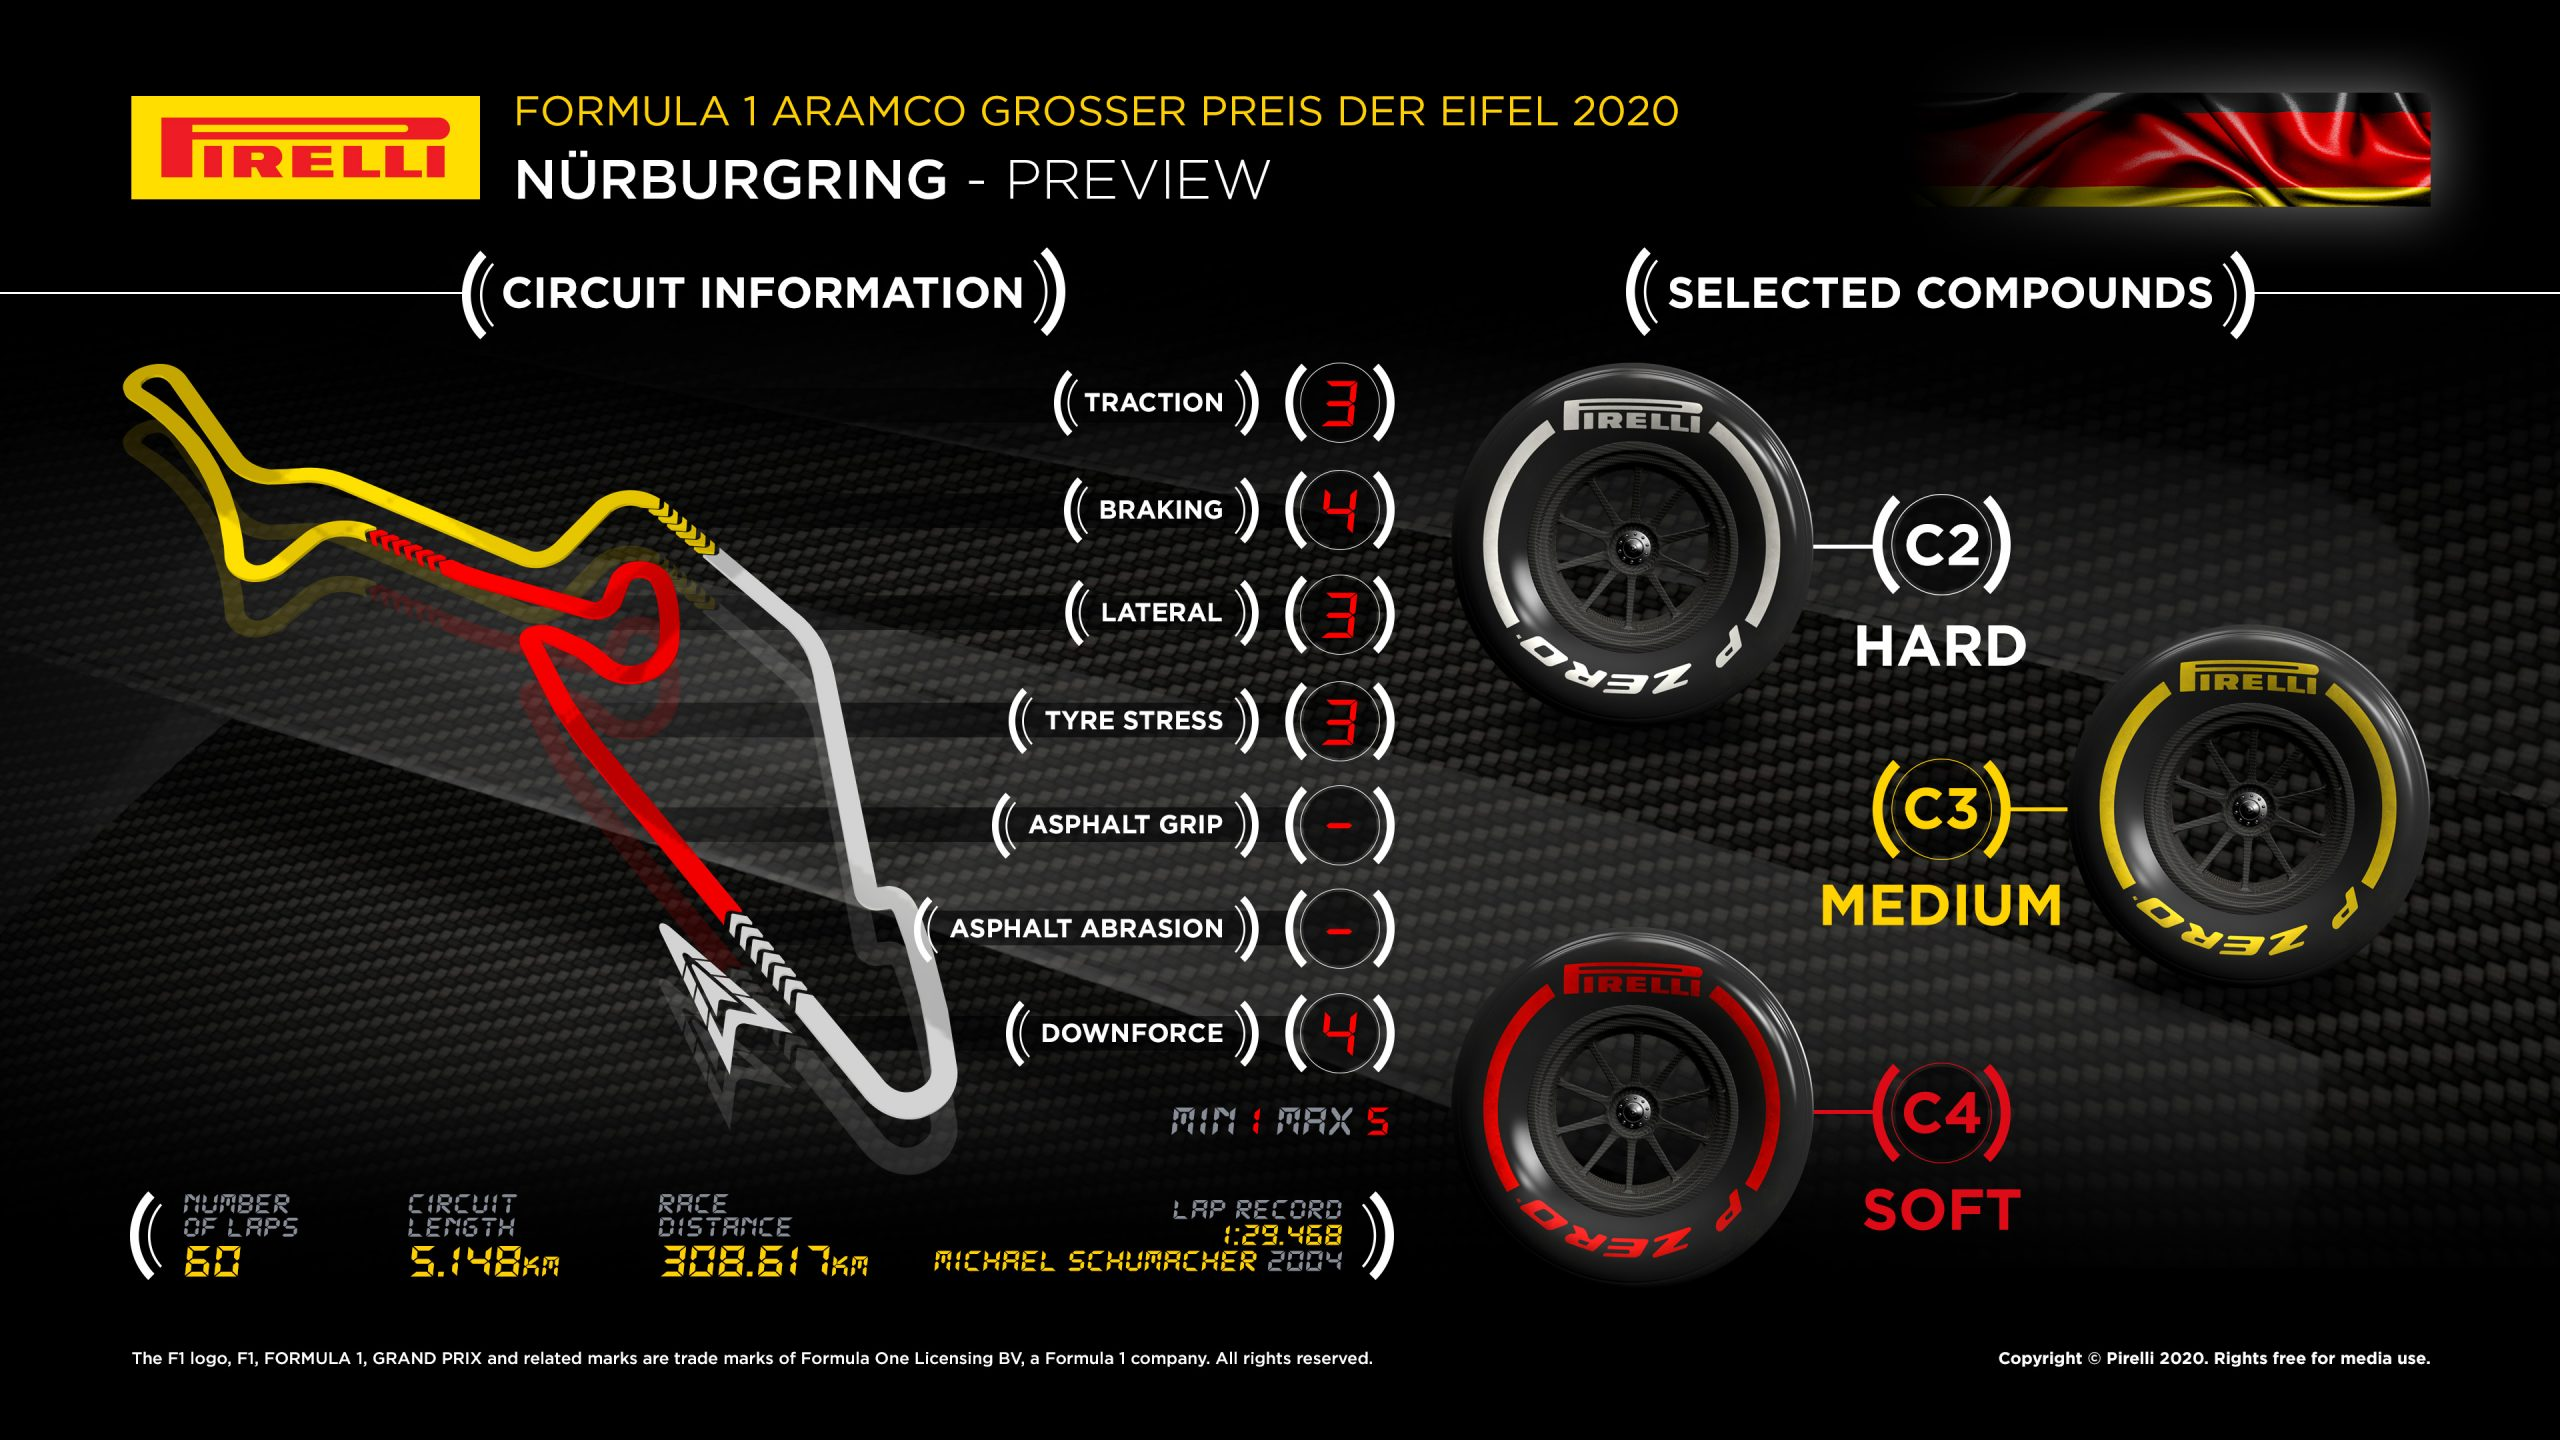 All info you need to see before the first Eifel GP starts